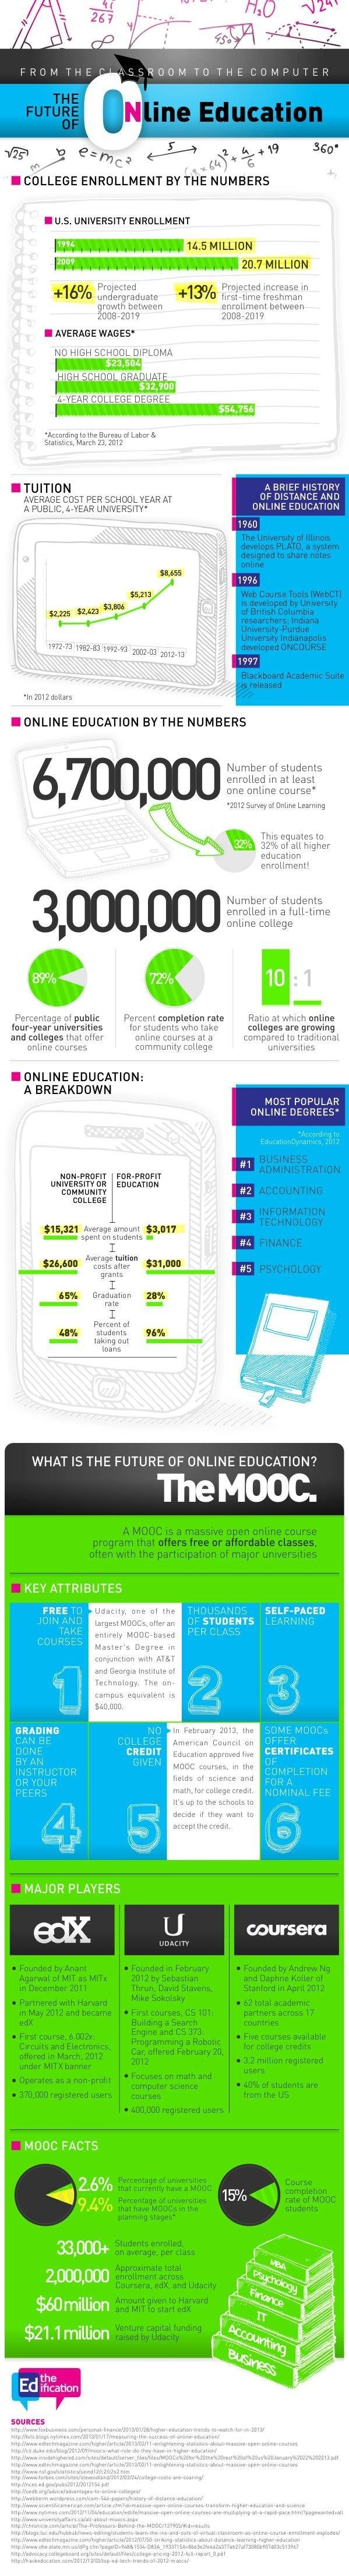 The Future of Online Education thumbnail